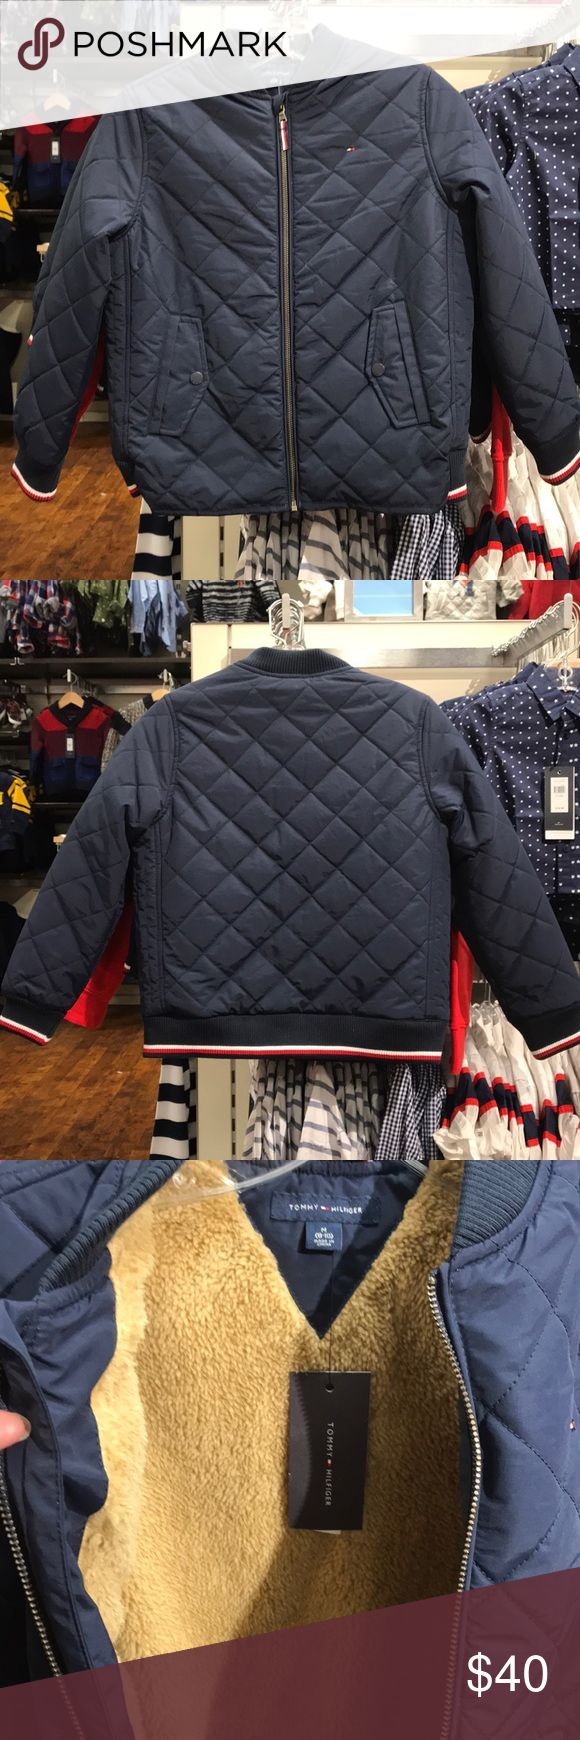 Tommy Hilfiger Kids Jacket M (8-10) Tommy Hilfiger Kids Jacket M (8-10) New with tag Tommy Hilfiger Jackets & Coats